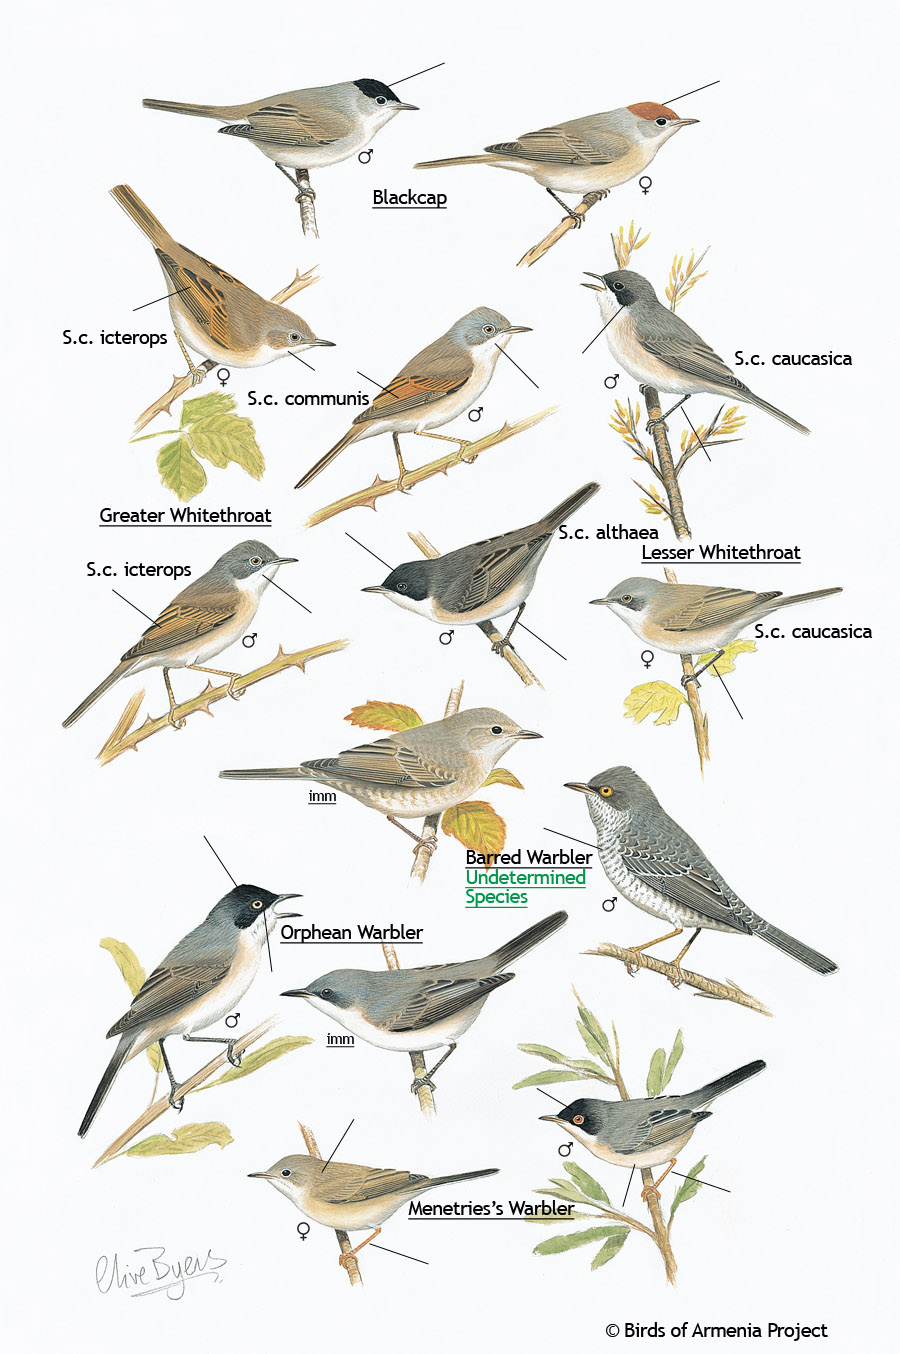 Blackcaps, Whitethroats and Warblers